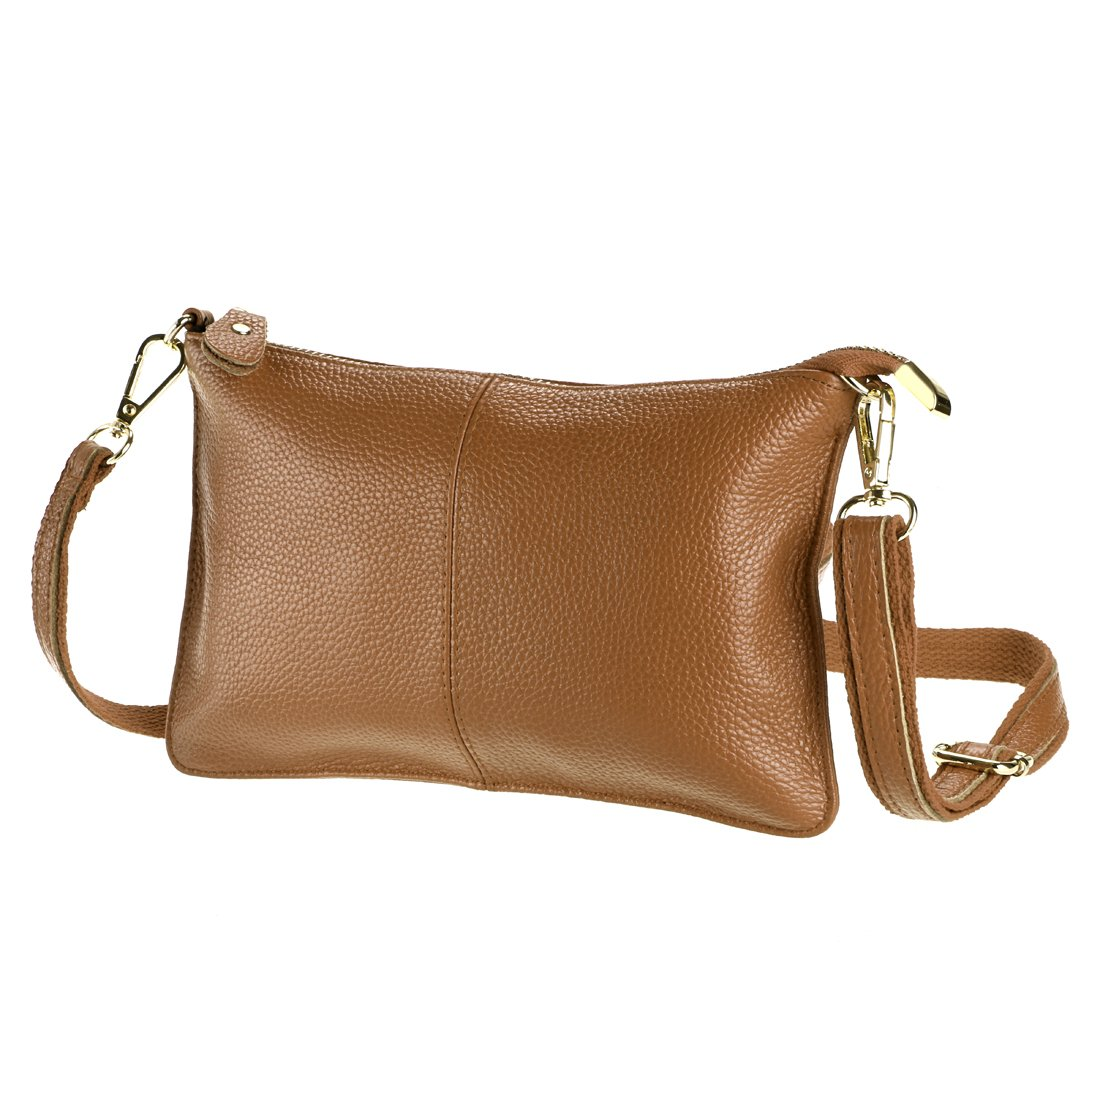 SEALINF Women's Cowhide Leather Clutch Handbag Small Shoulder Bag Purse (taupe)